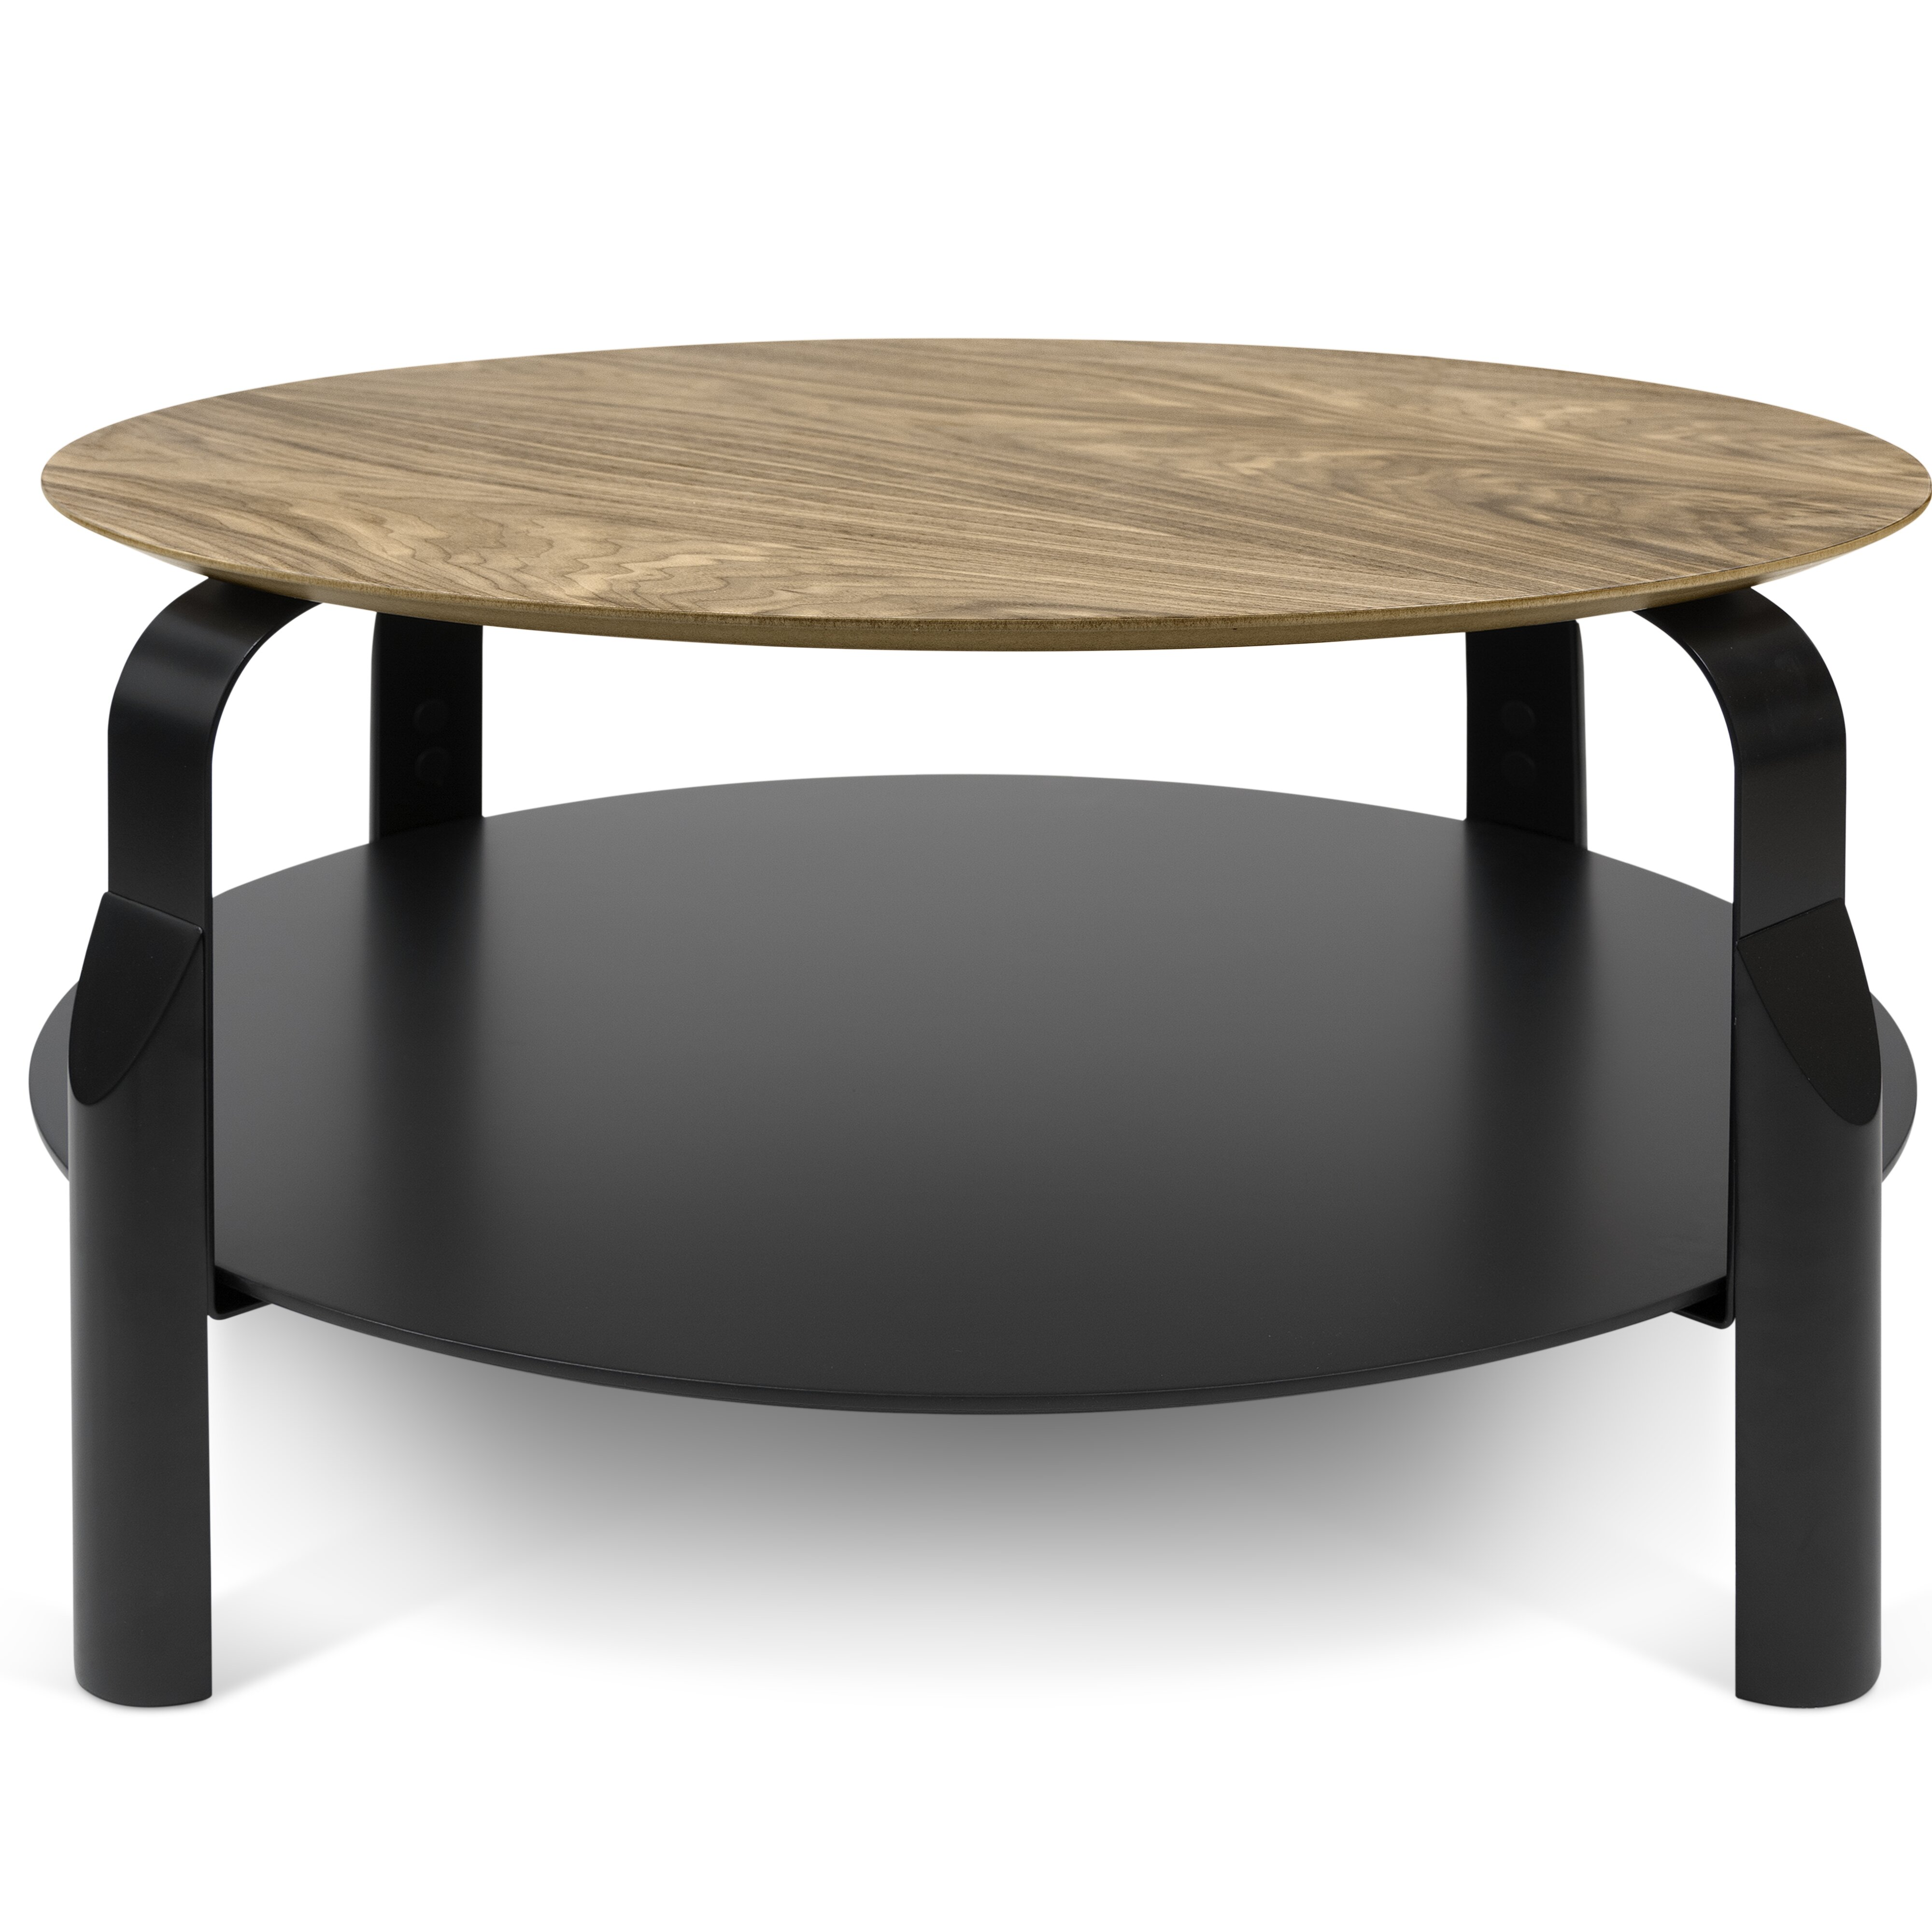 Kyoto coffee table peugen kyoto coffee table michael s smith inc tema kyoto coffee geotapseo Images